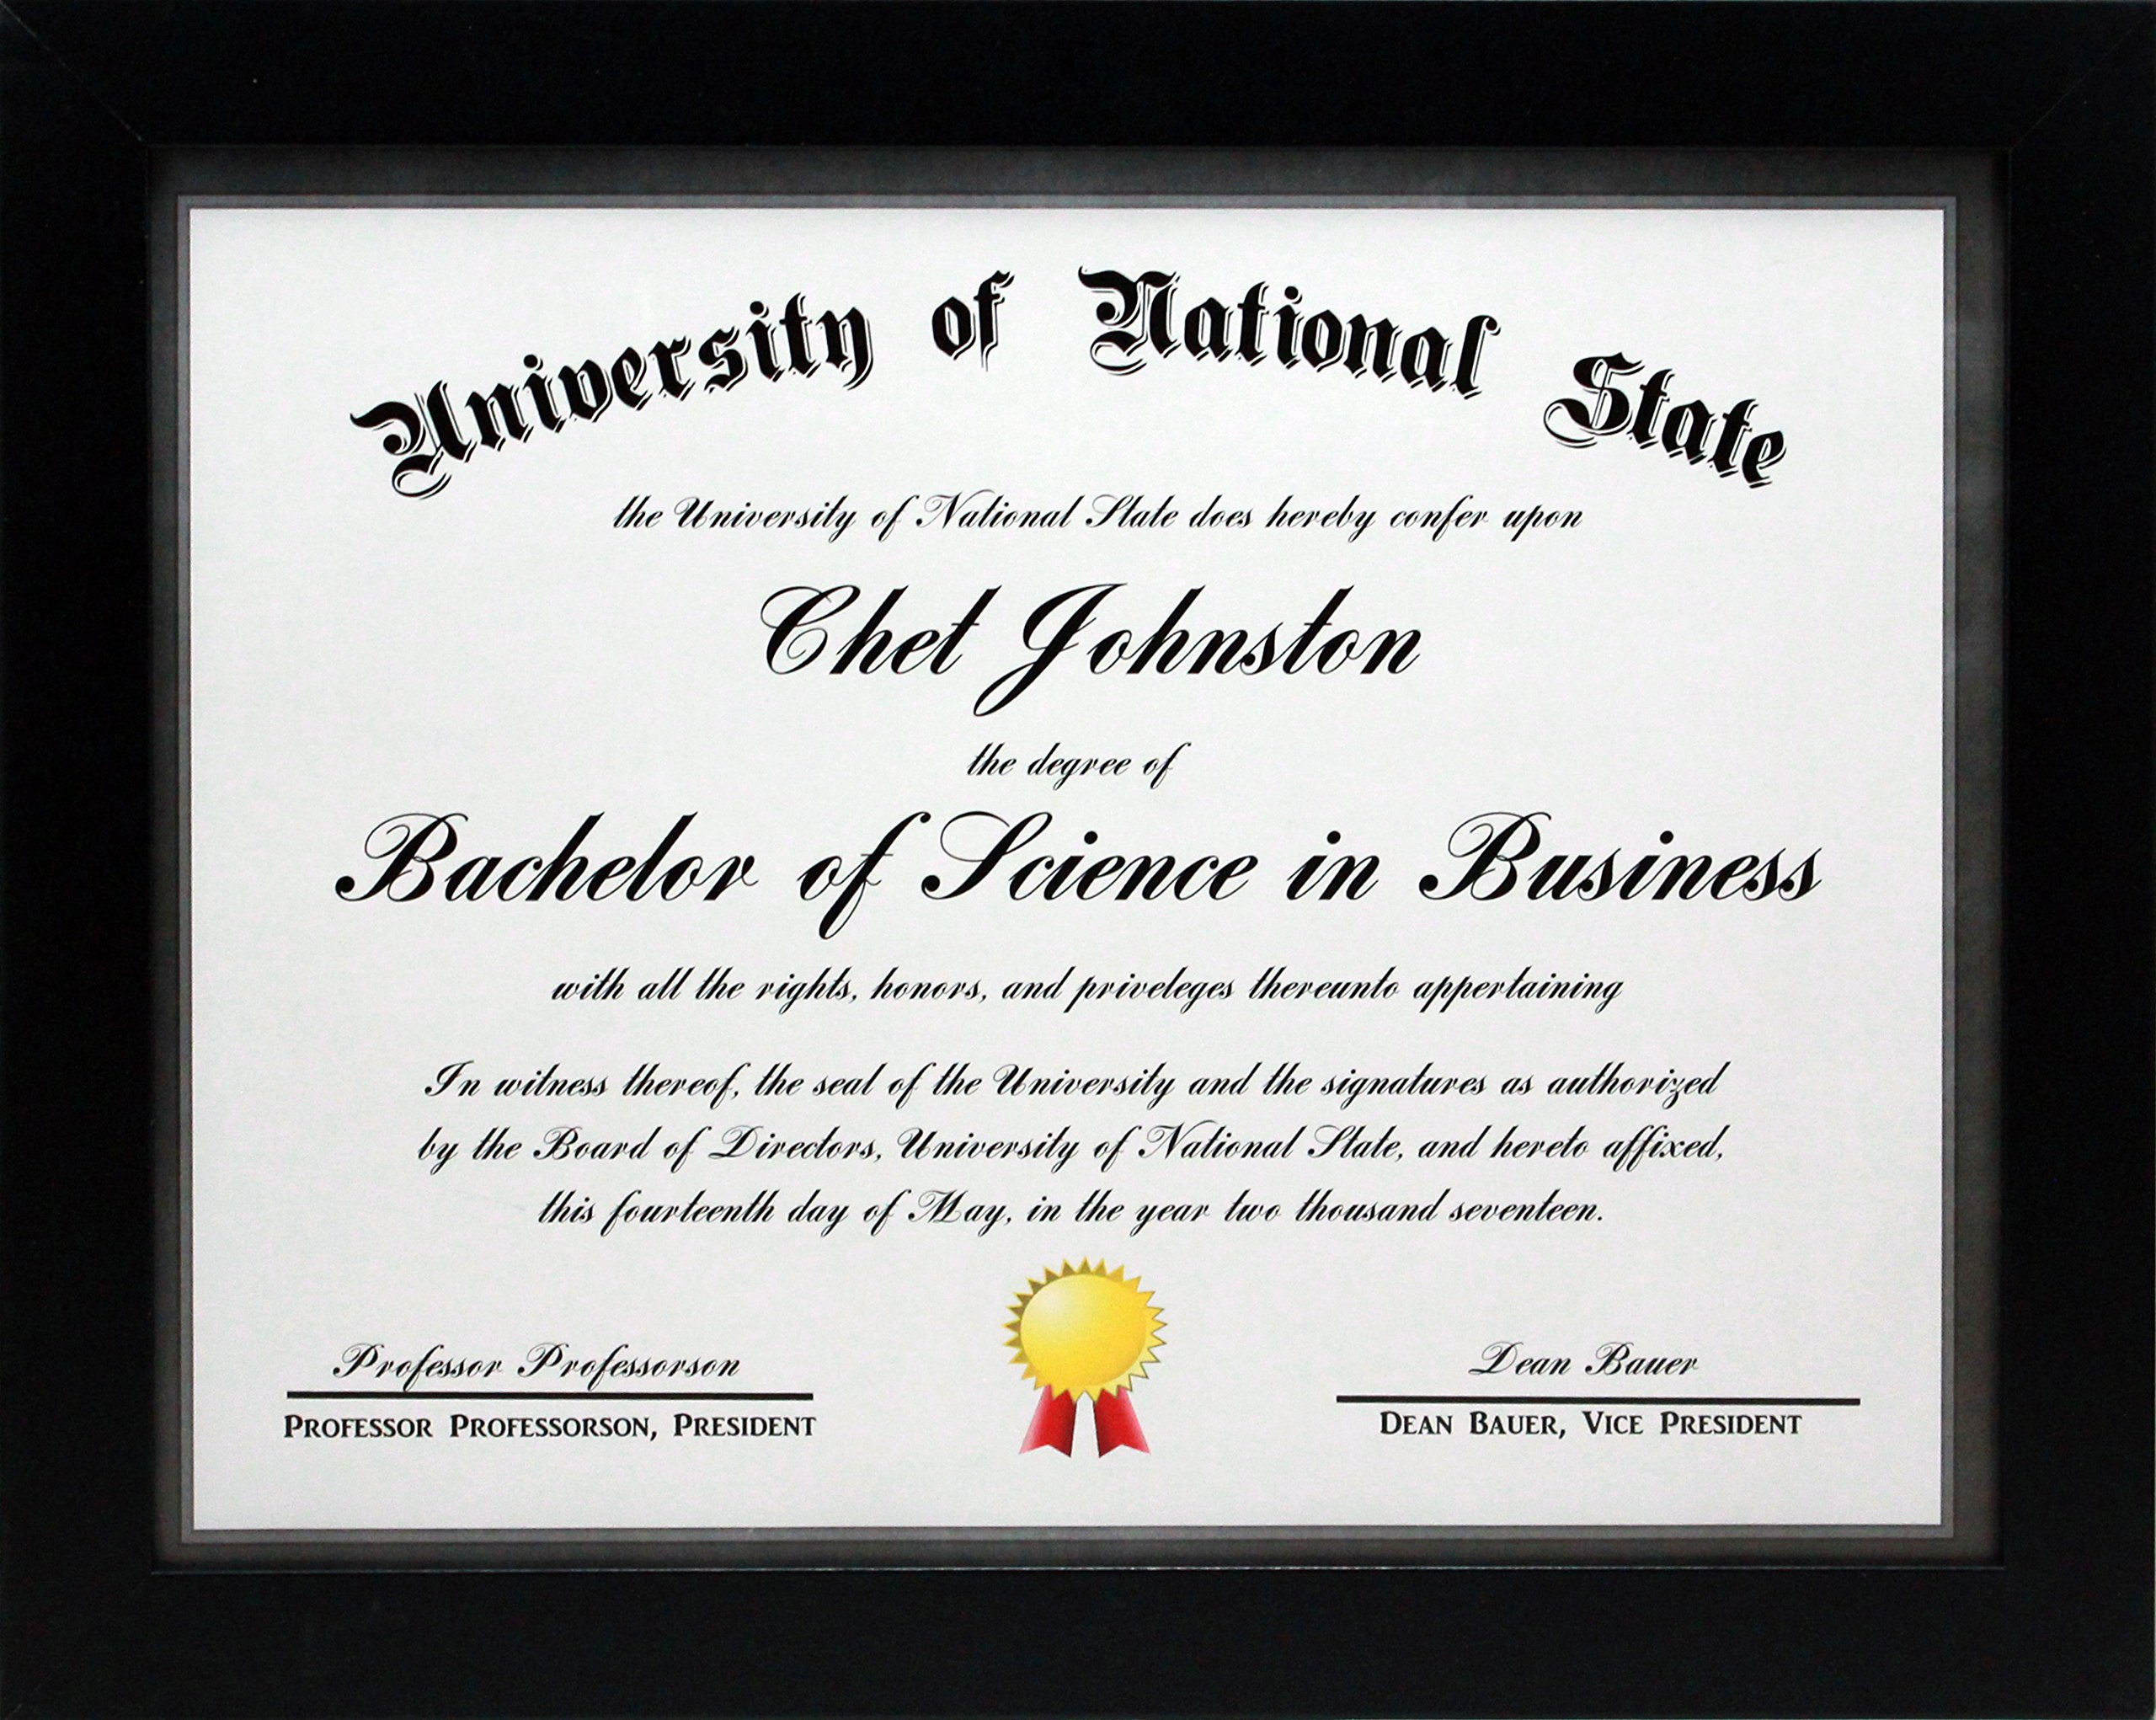 8.5x11 Black Gallery Certificate and Document Frame - Wide Molding - Includes both Attached Hanging Hardware and Desktop Easel - Certificates, Documents, a Diploma, or a Photo (8.5x11)